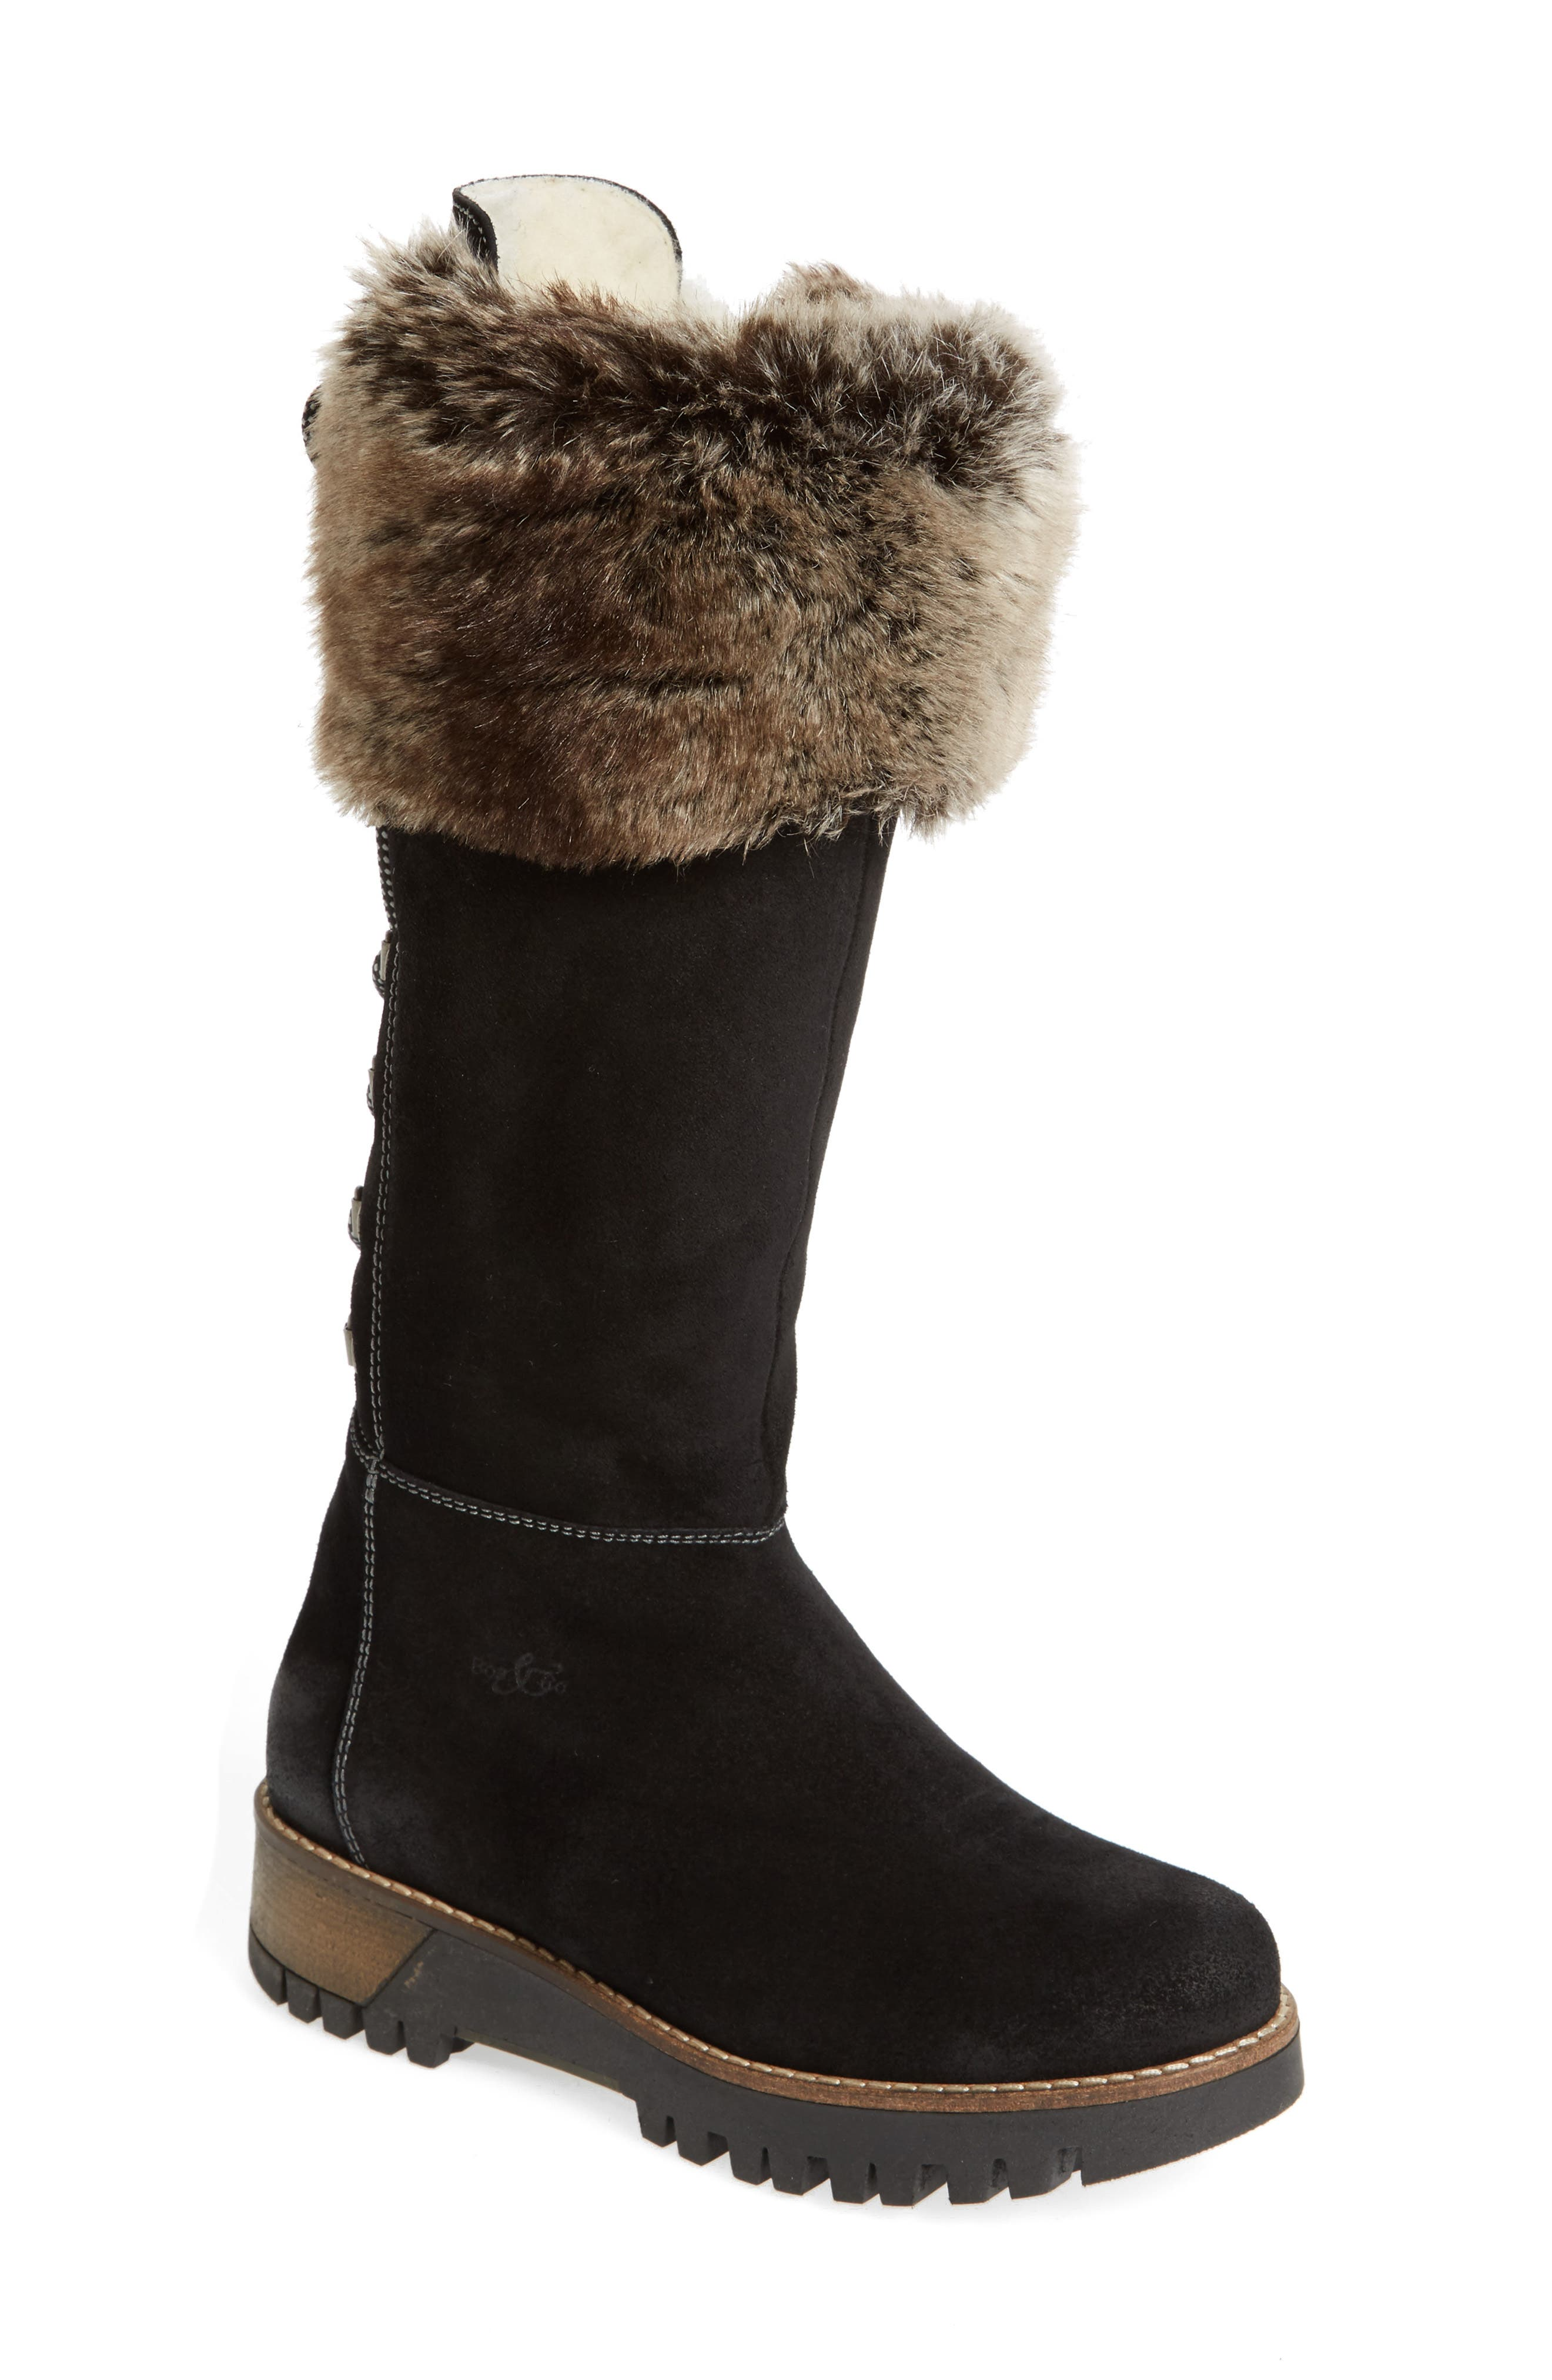 Graham Waterproof Winter Boot with Faux Fur Cuff, Main, color, 001